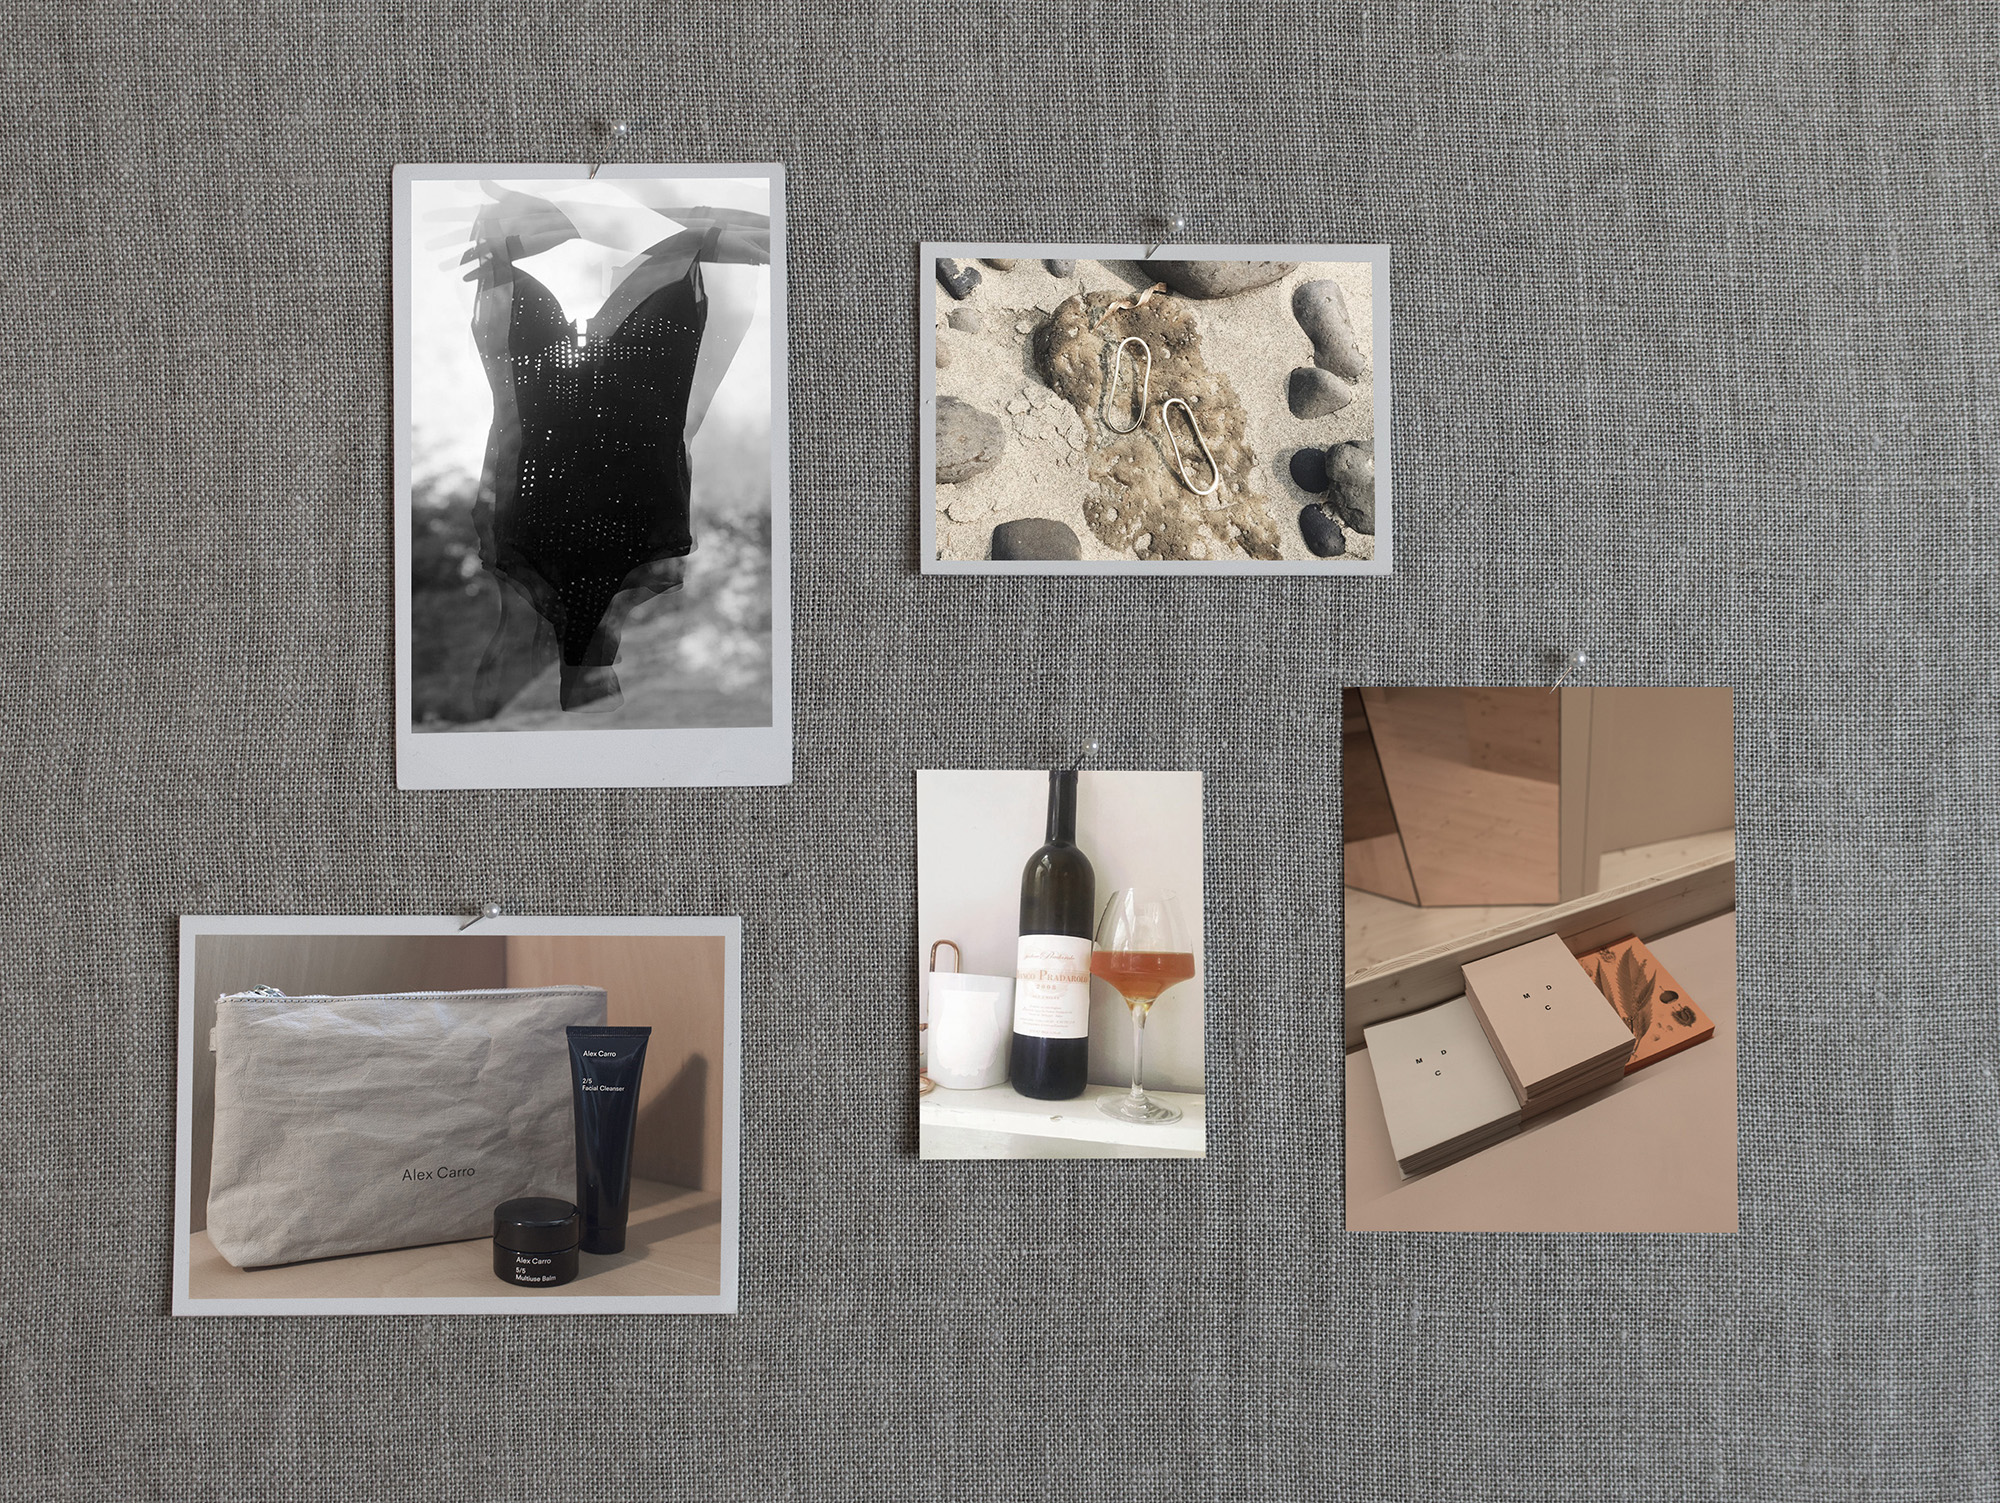 Clockwise from left to right: 4. Padded Body Donna by Opaak for €195, 5. Nekelim Earrings by Elizabeth Leflar for €142, 6. Facial and Body Treatments at MDC Cosmetics Berlin, 7. Natural Orange Wine Bianco Pradarolo 2008 for £17, 8. Discovery Set by Alex Carro for €79